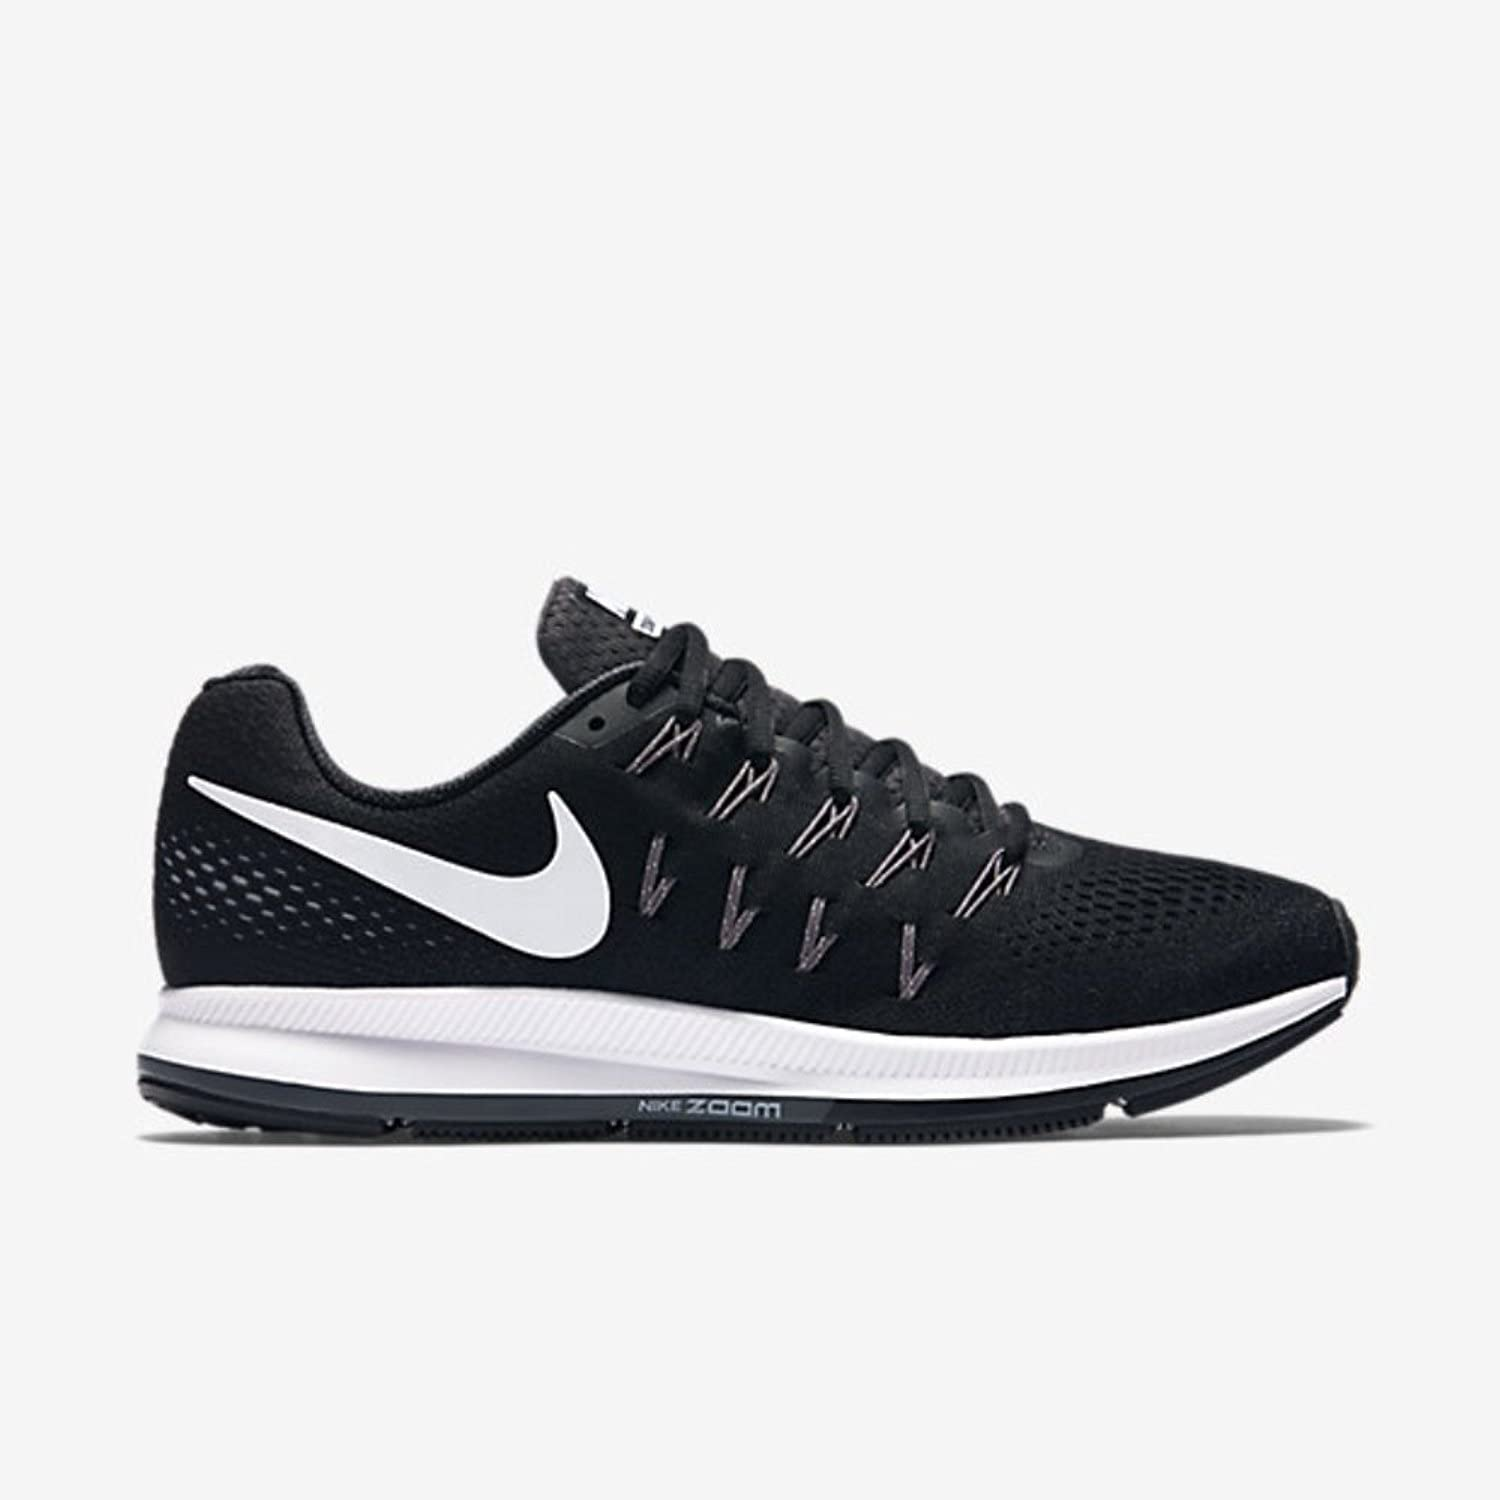 Amazon.com: NIKE Air Zoom Pegasus 33 TB: Shoes